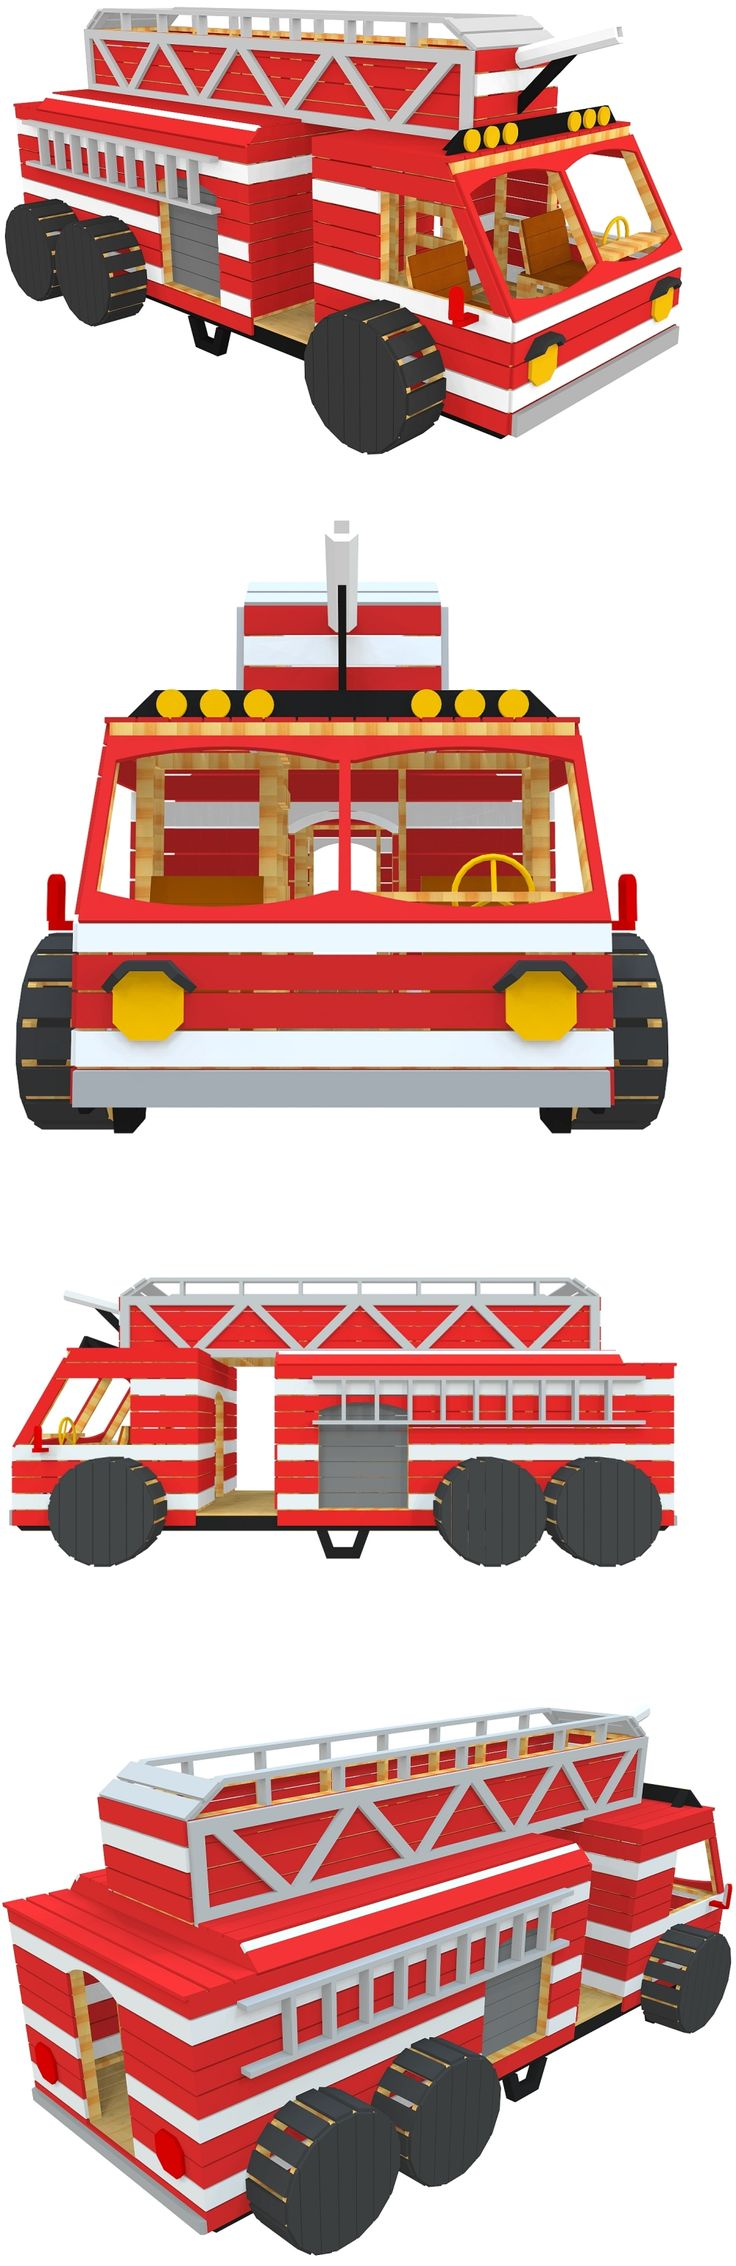 The firetruck playhouse plan, found on paulsplayhouses.com